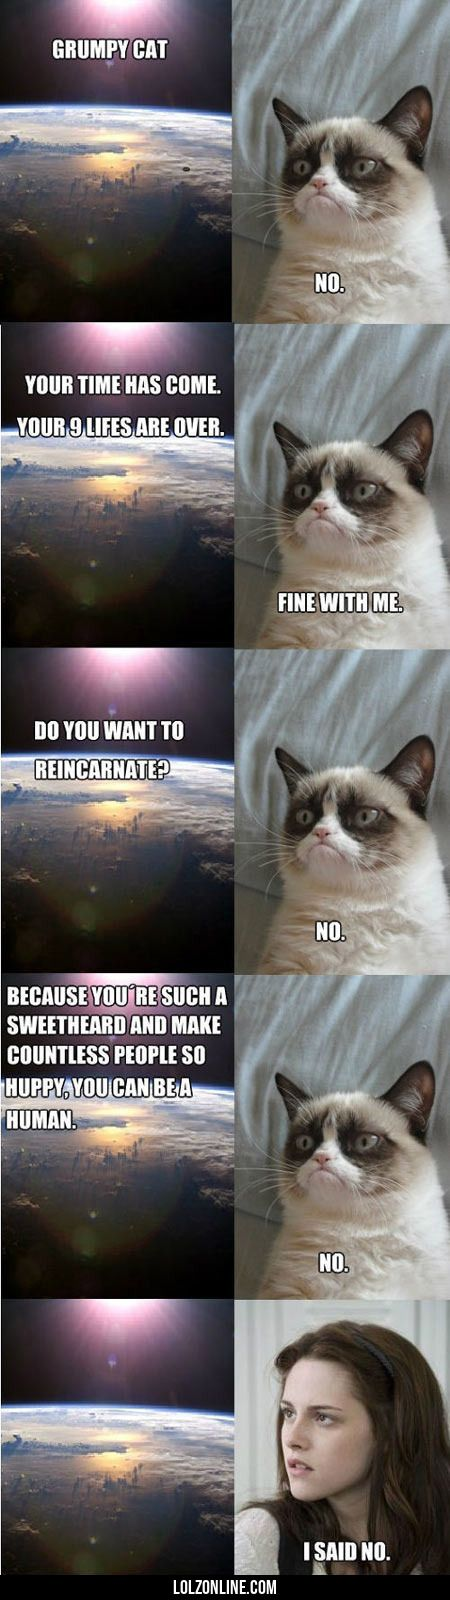 Your time has come, Grumpy Cat…#funny #lol #lolzonline - Tap the link now to see all of our cool cat collection